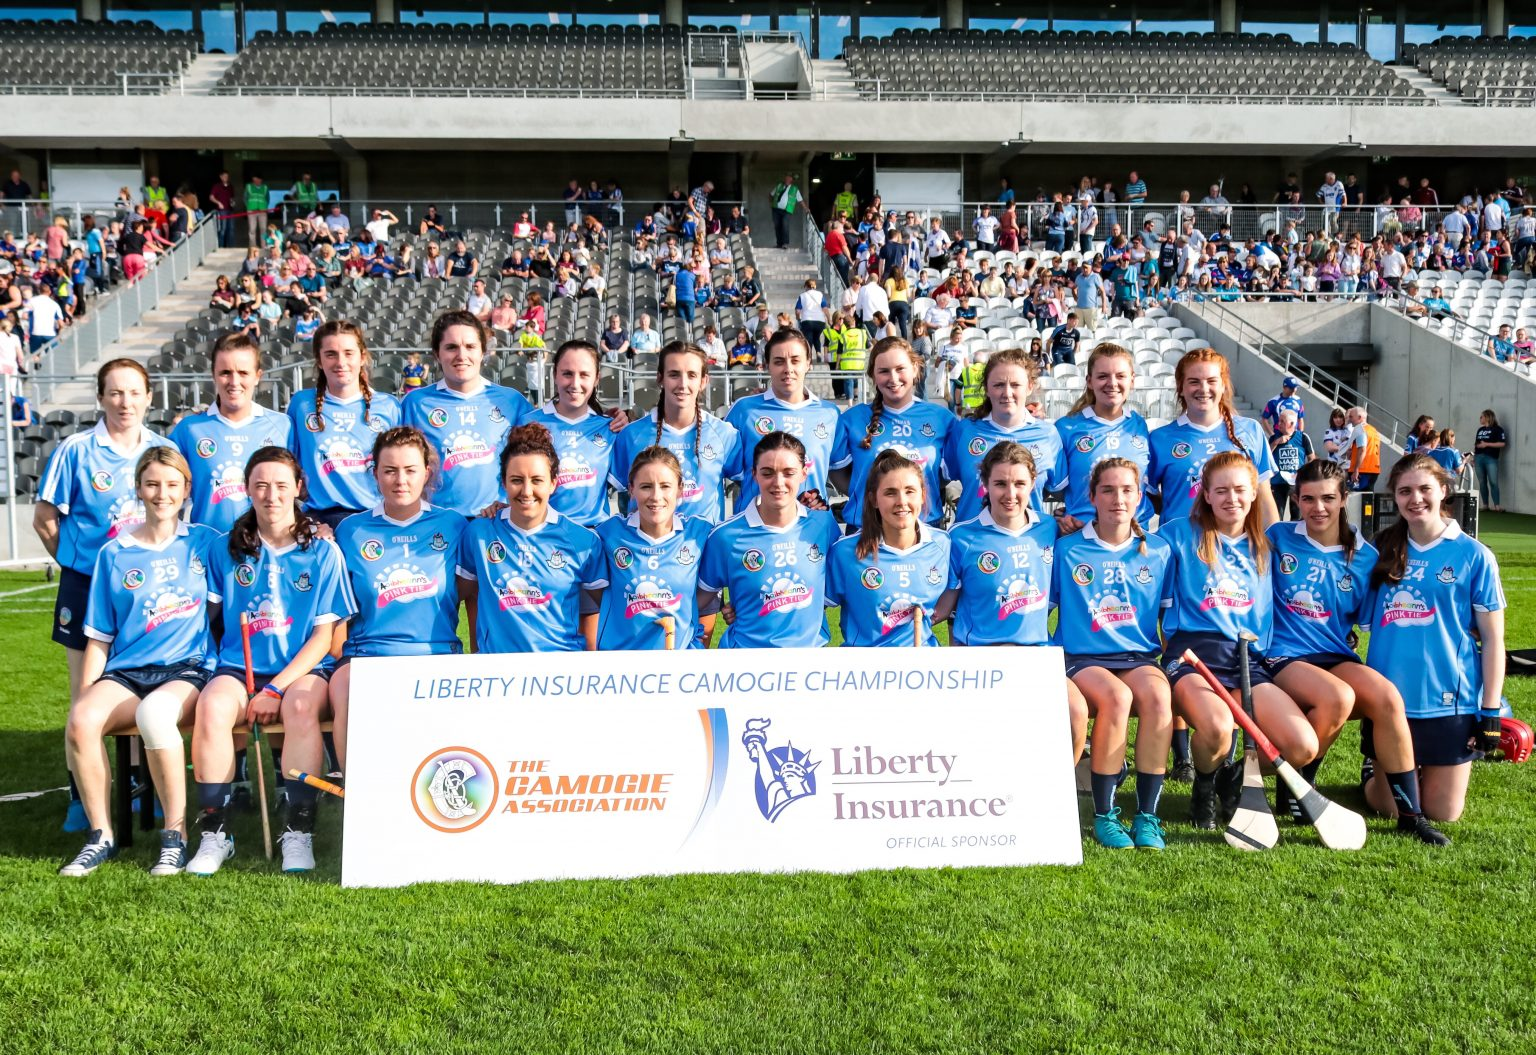 Squad photo of the Dublin Senior Camogie Squad in sky blue jerseys and navy skorts ahead of their All Ireland Quarter Final which they lost to Galway